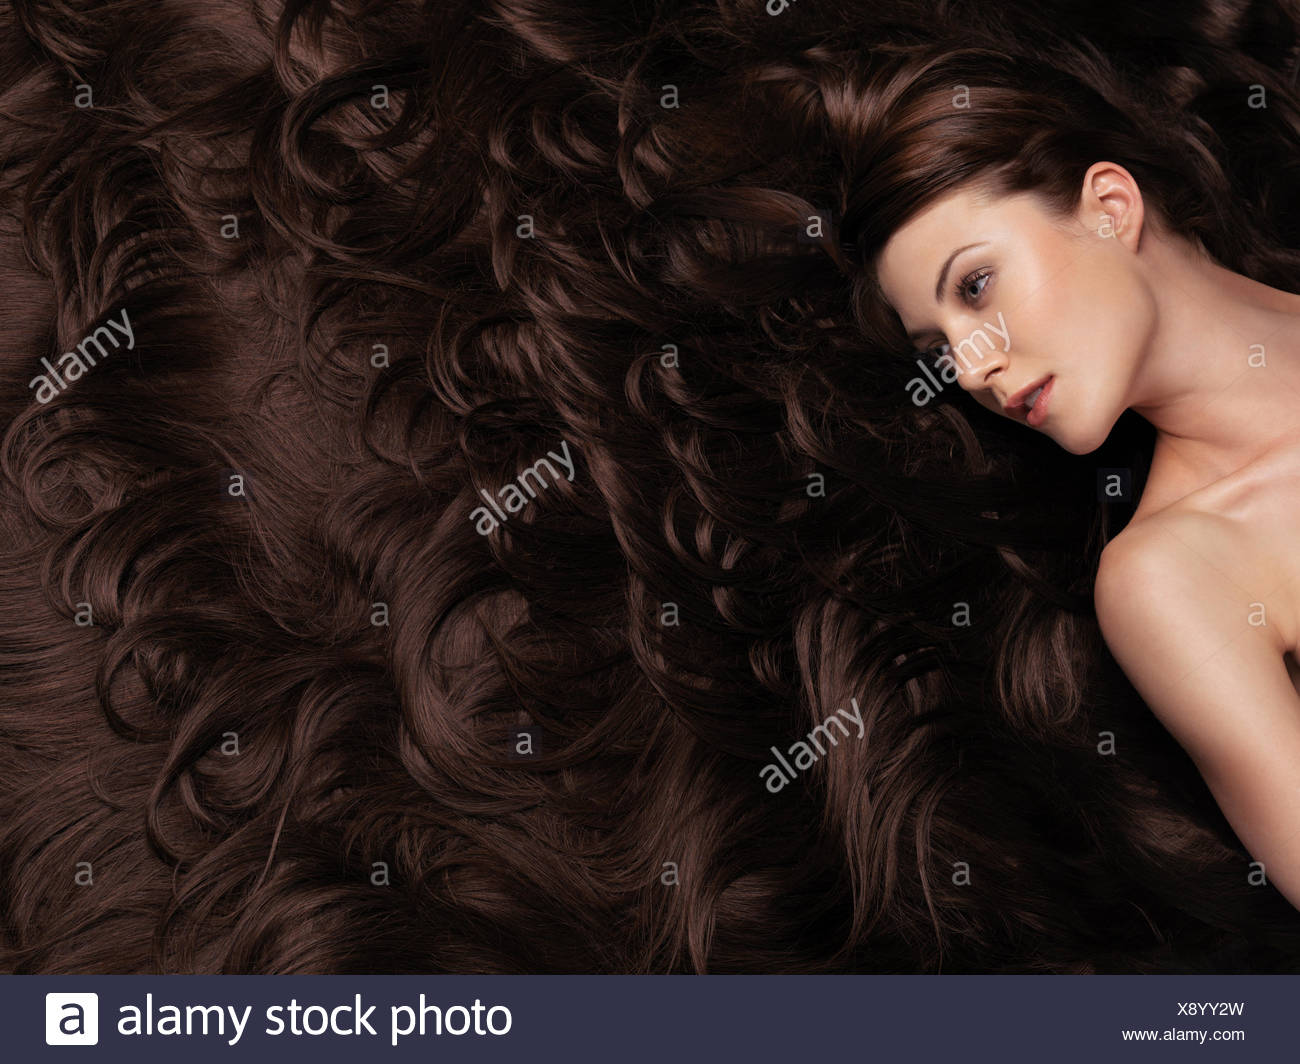 Woman With Very Long Brown Hair Hair Extensions Stock Photo